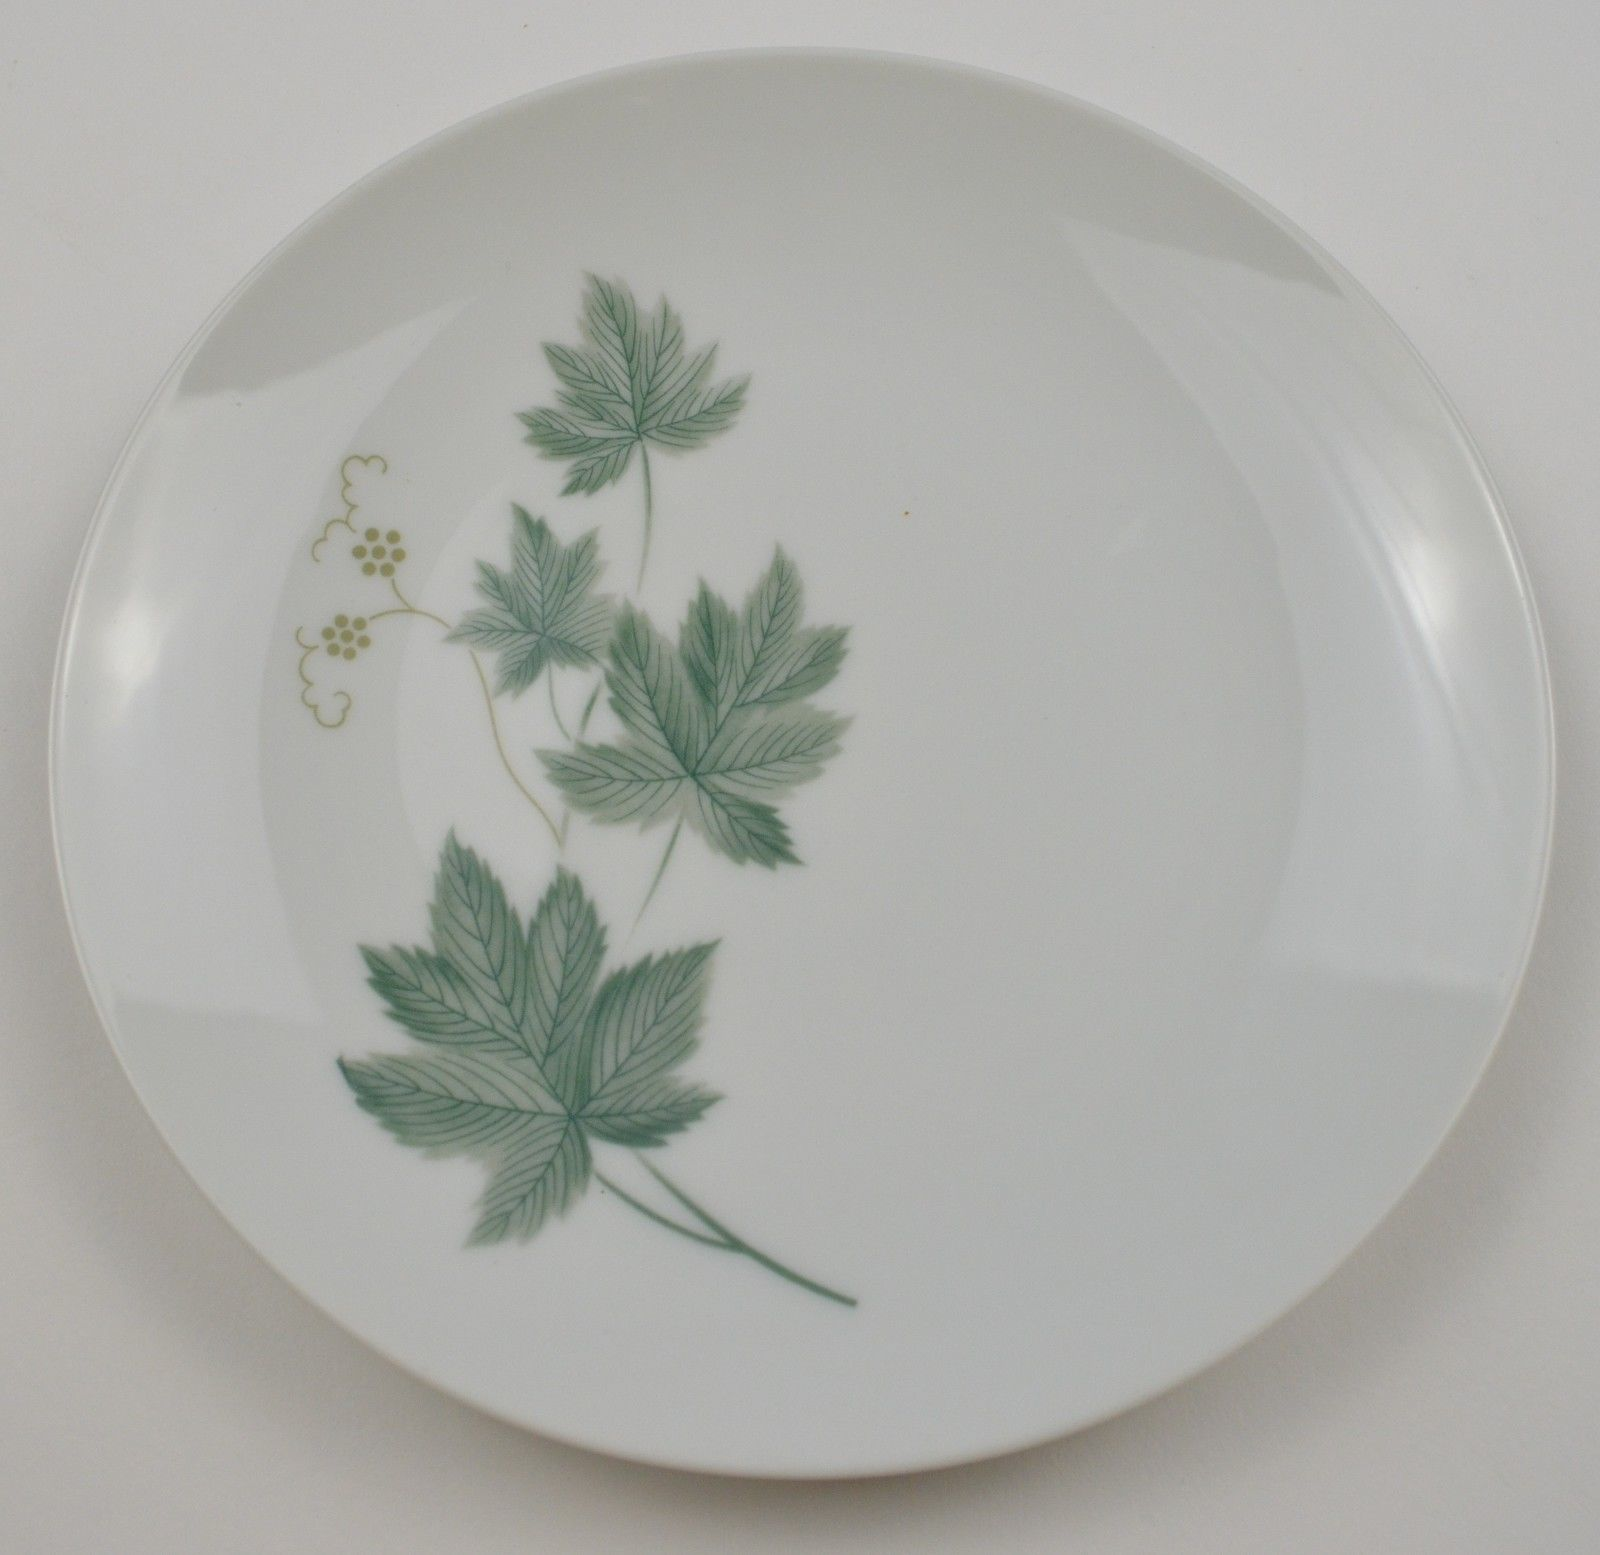 "Vintage Noritake China Wild Ivy Pattern Bread & Butter Plate 6.375"" Round Decor - $6.99"